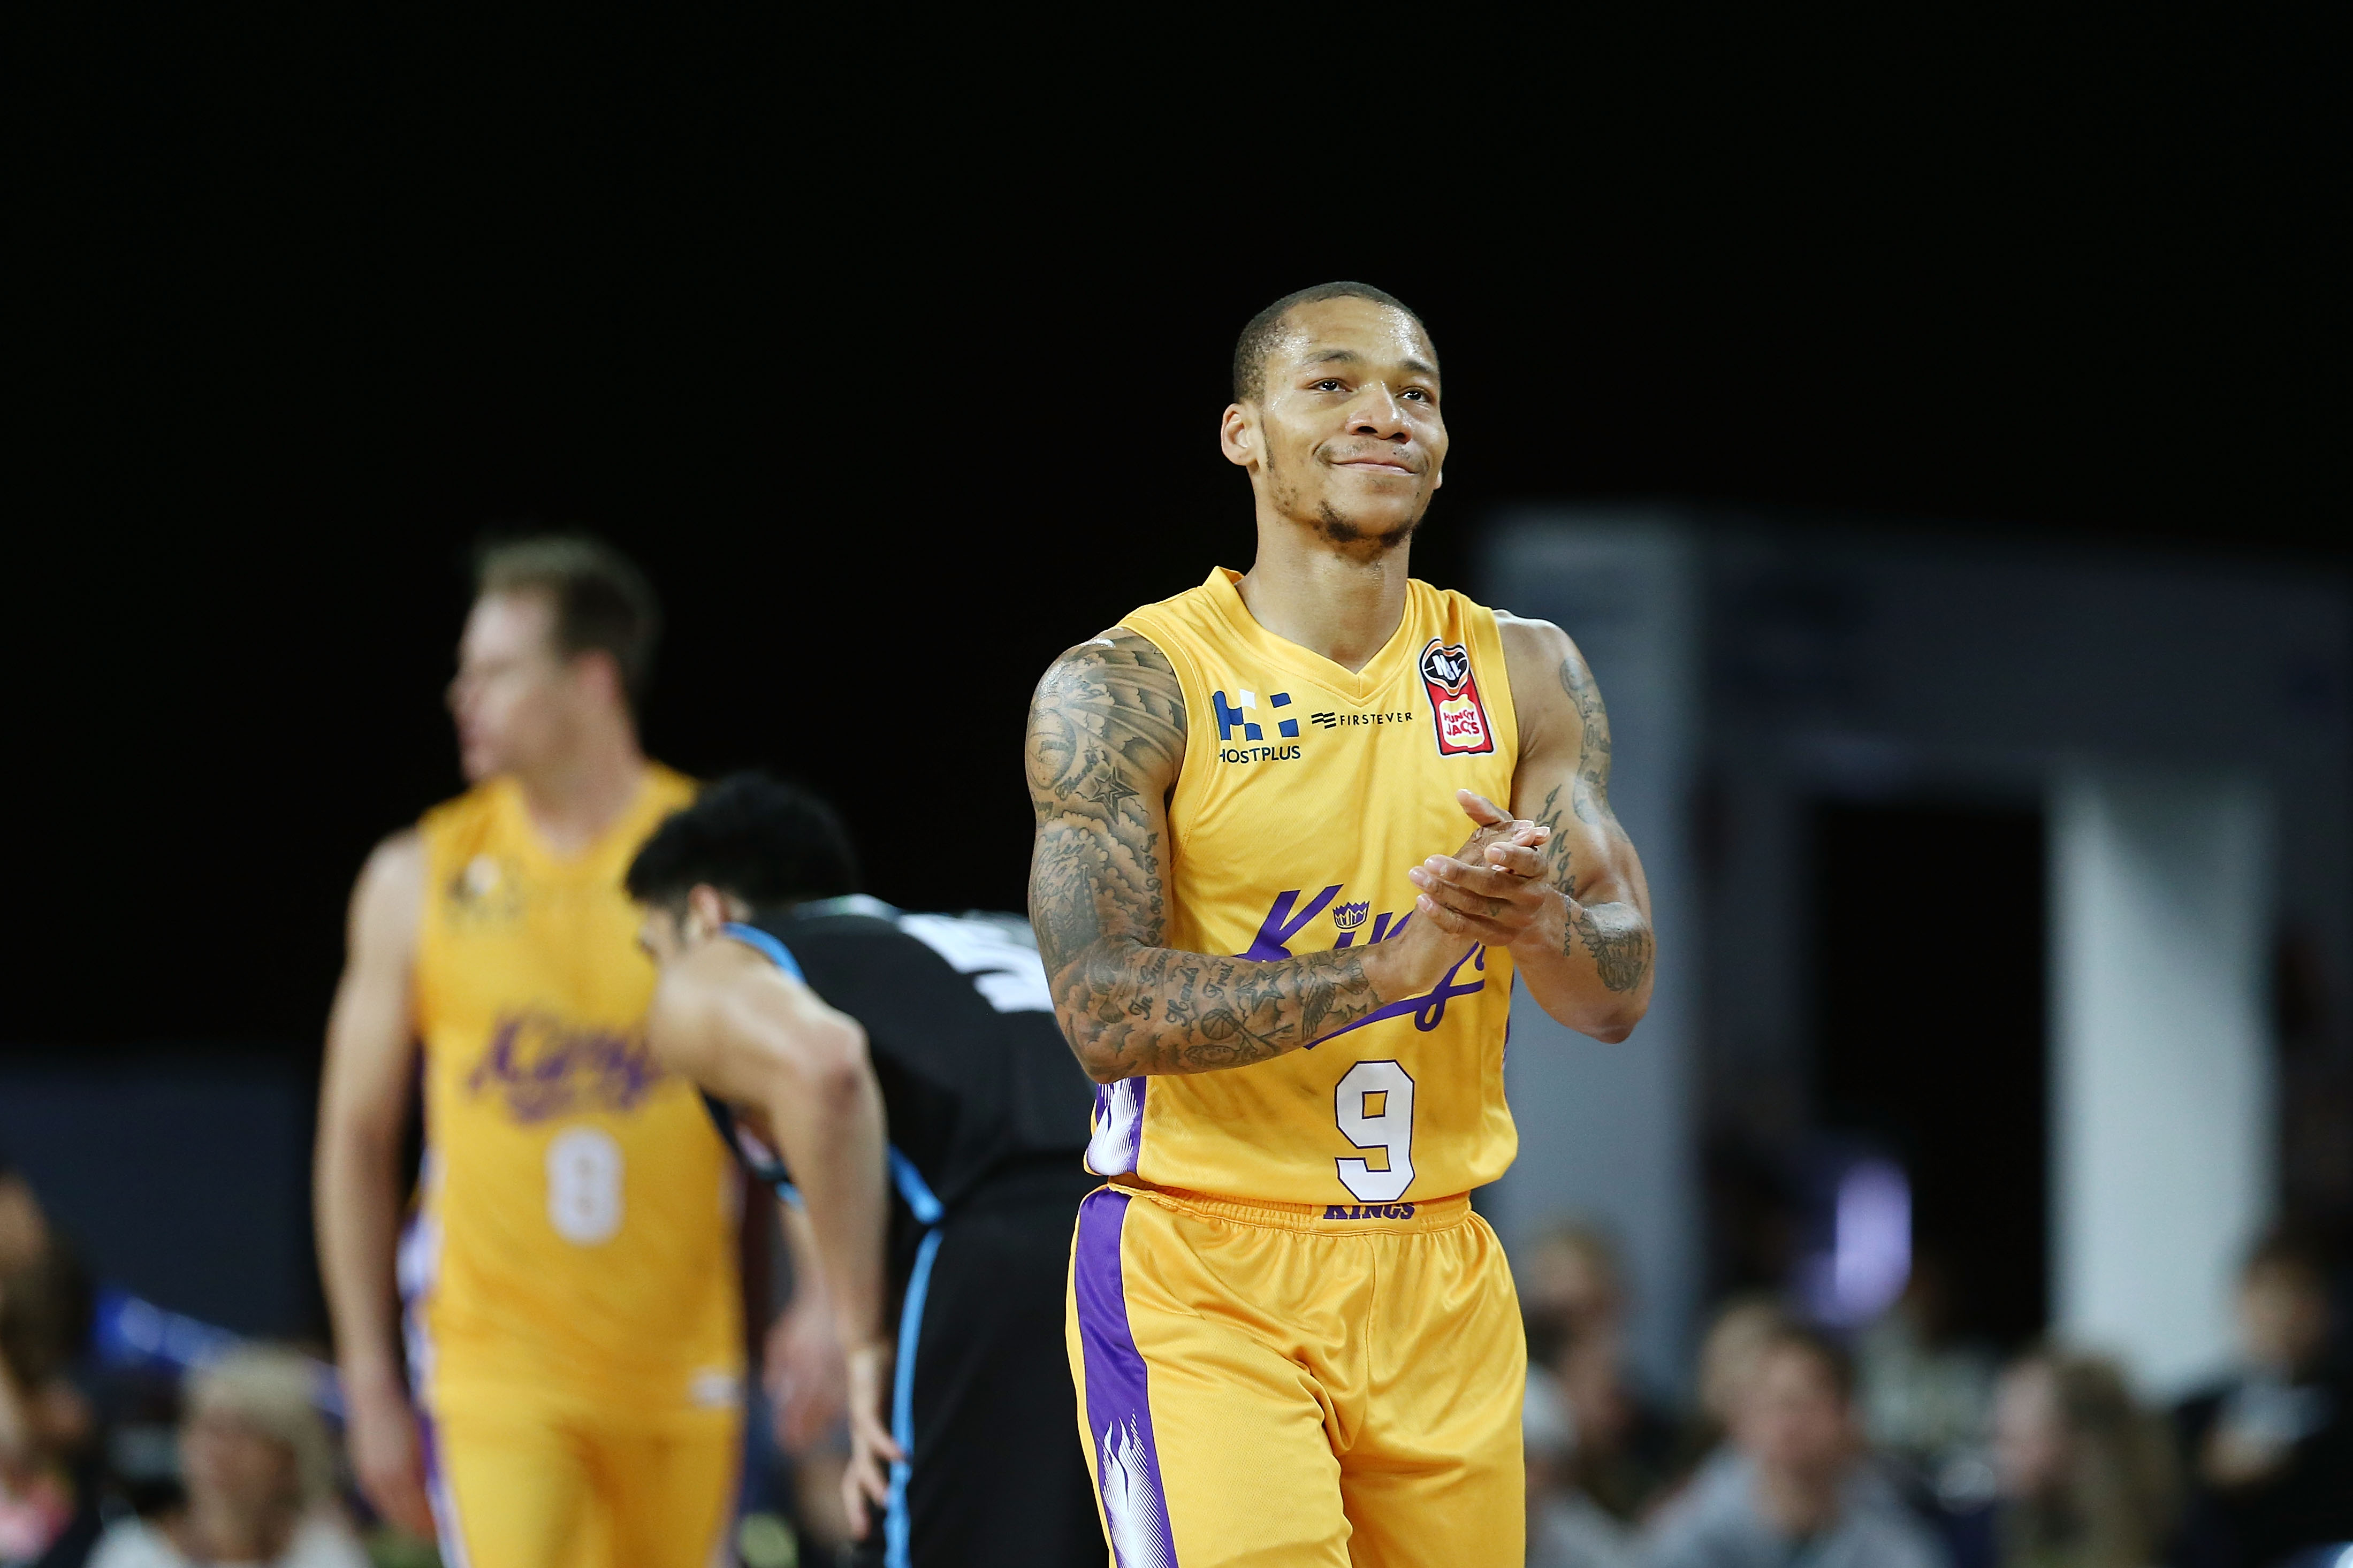 Sydney Kings Official Nationals Say Faulty Circuit Breaker Not Taylor Swift Caused Power Latest News 5 Mins Read Get Their First Win Of 2018 19 Over New Zealand On The Road